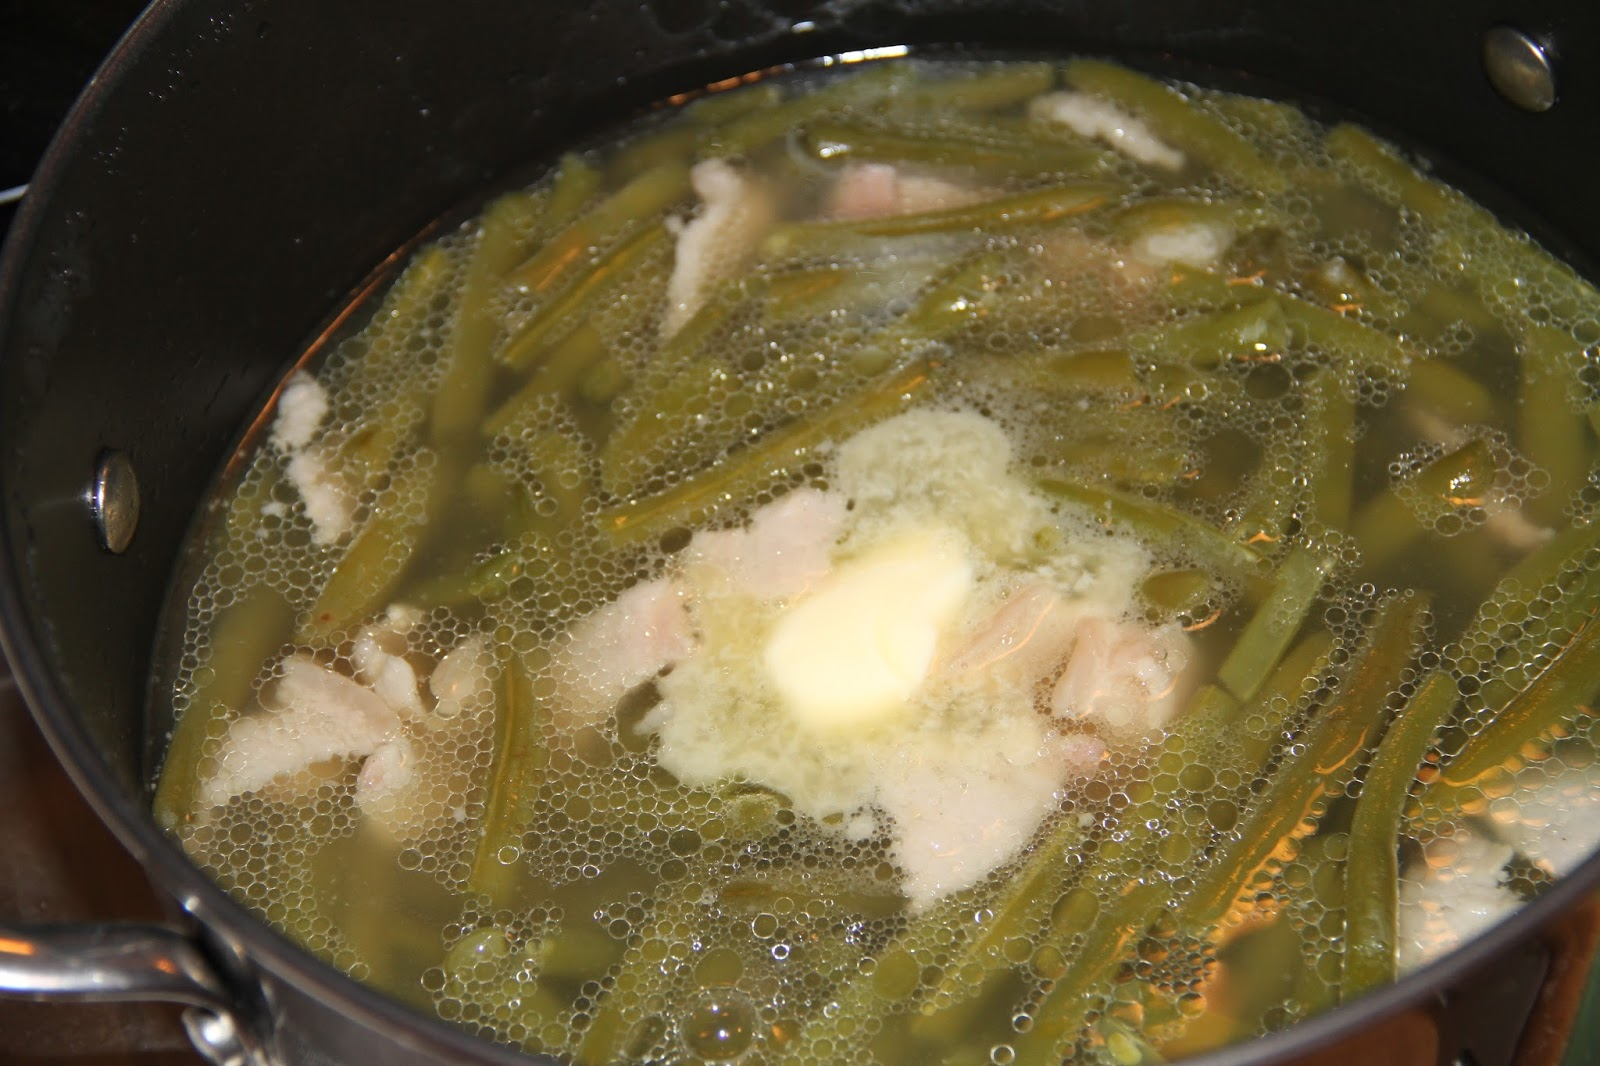 ... Do try them this summer when green beans are fresh and at their peak